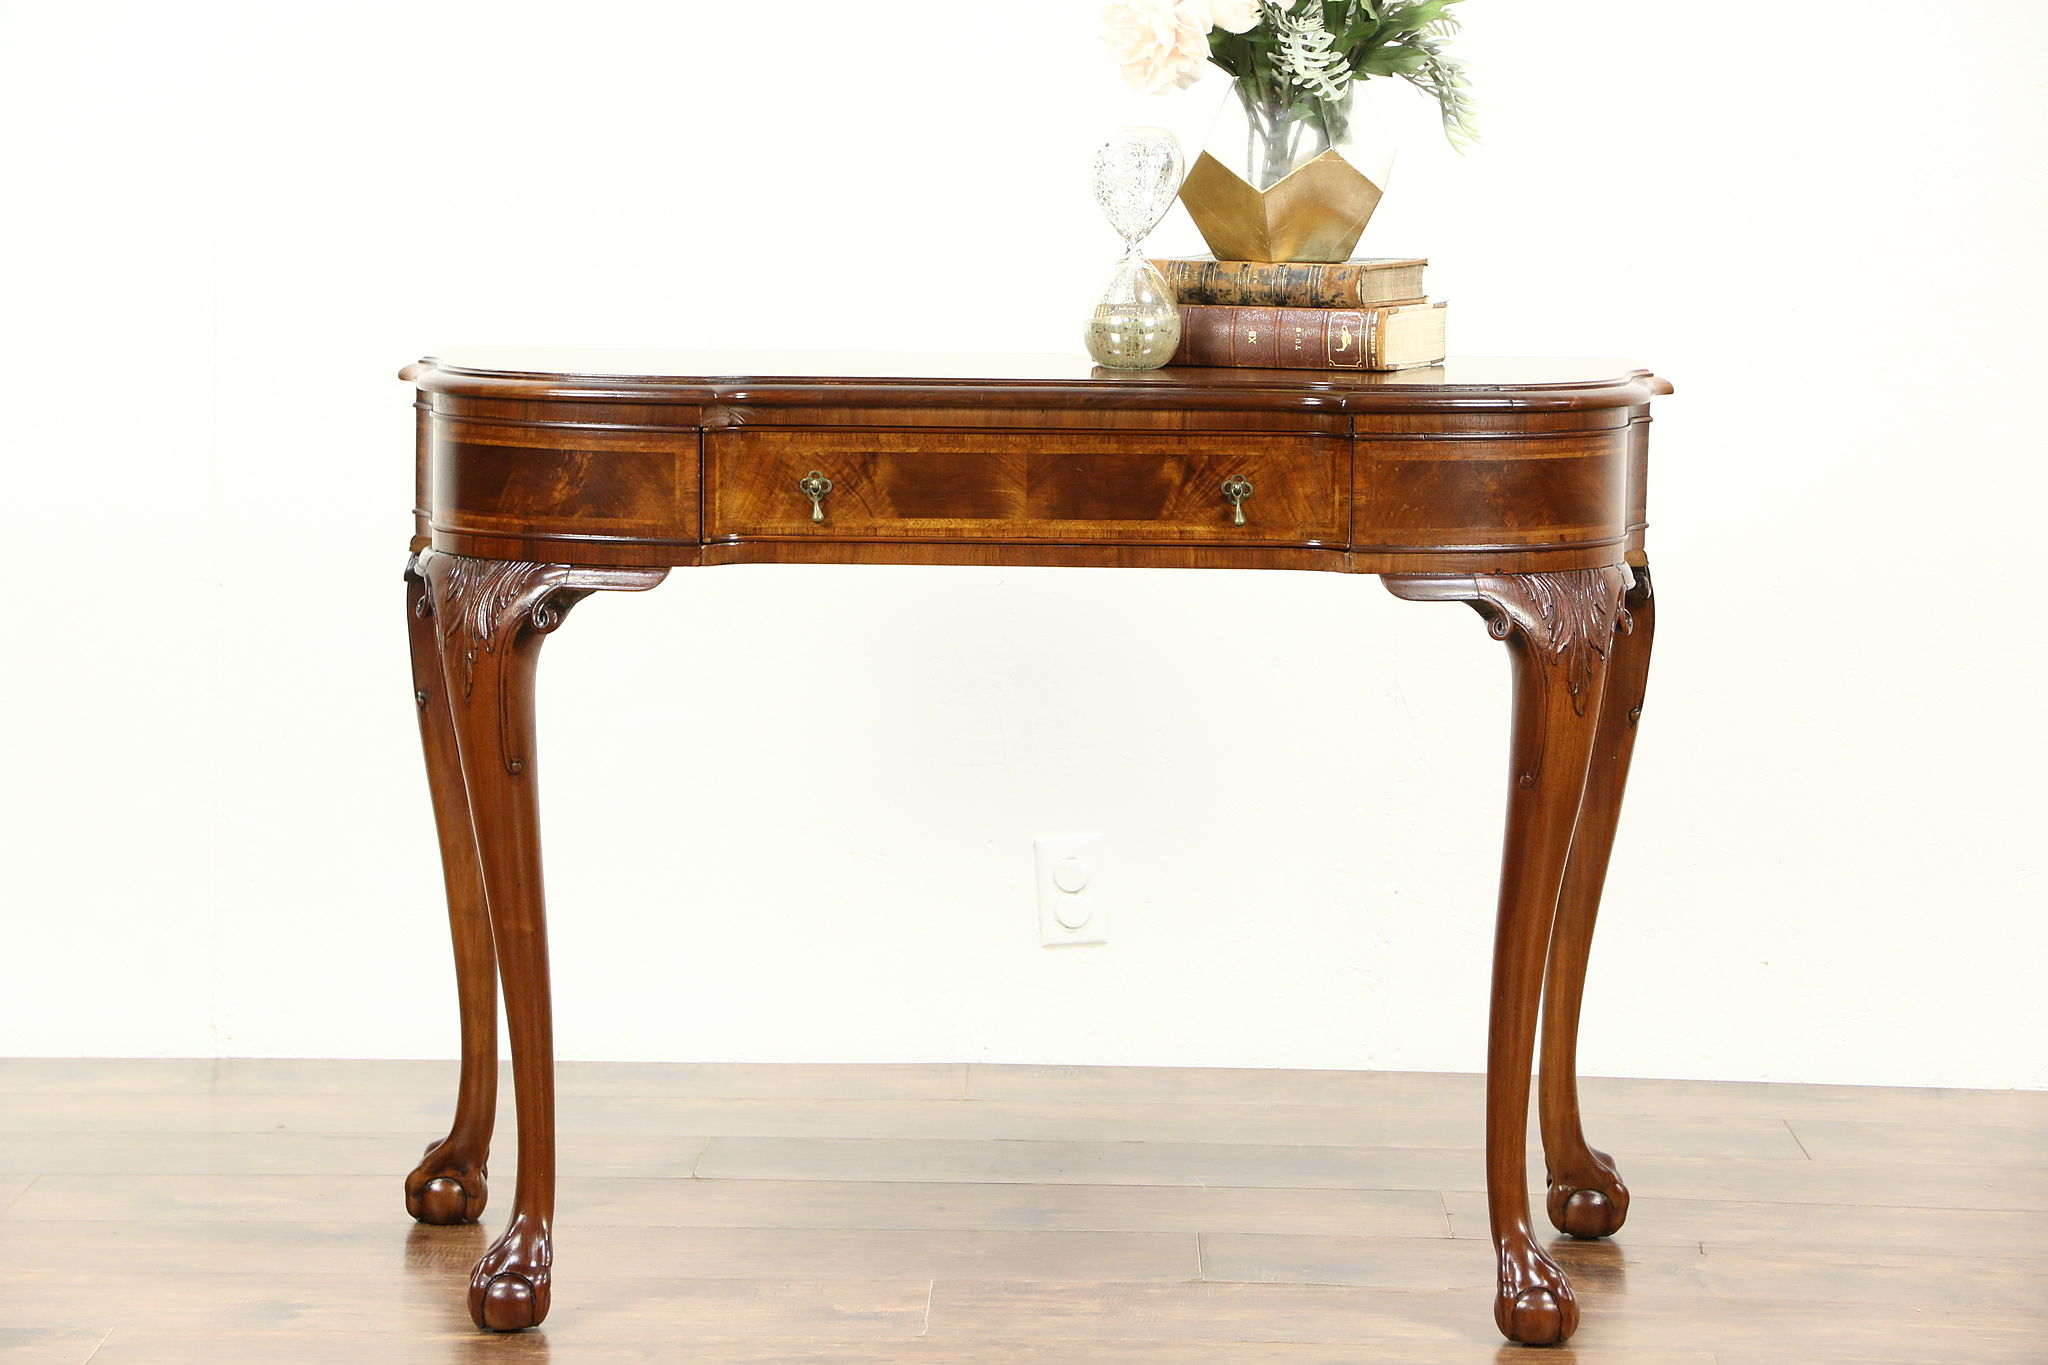 Delicieux Georgian Style Carved Walnut 1910 Antique Hall Console Table, Marquetry  Banding